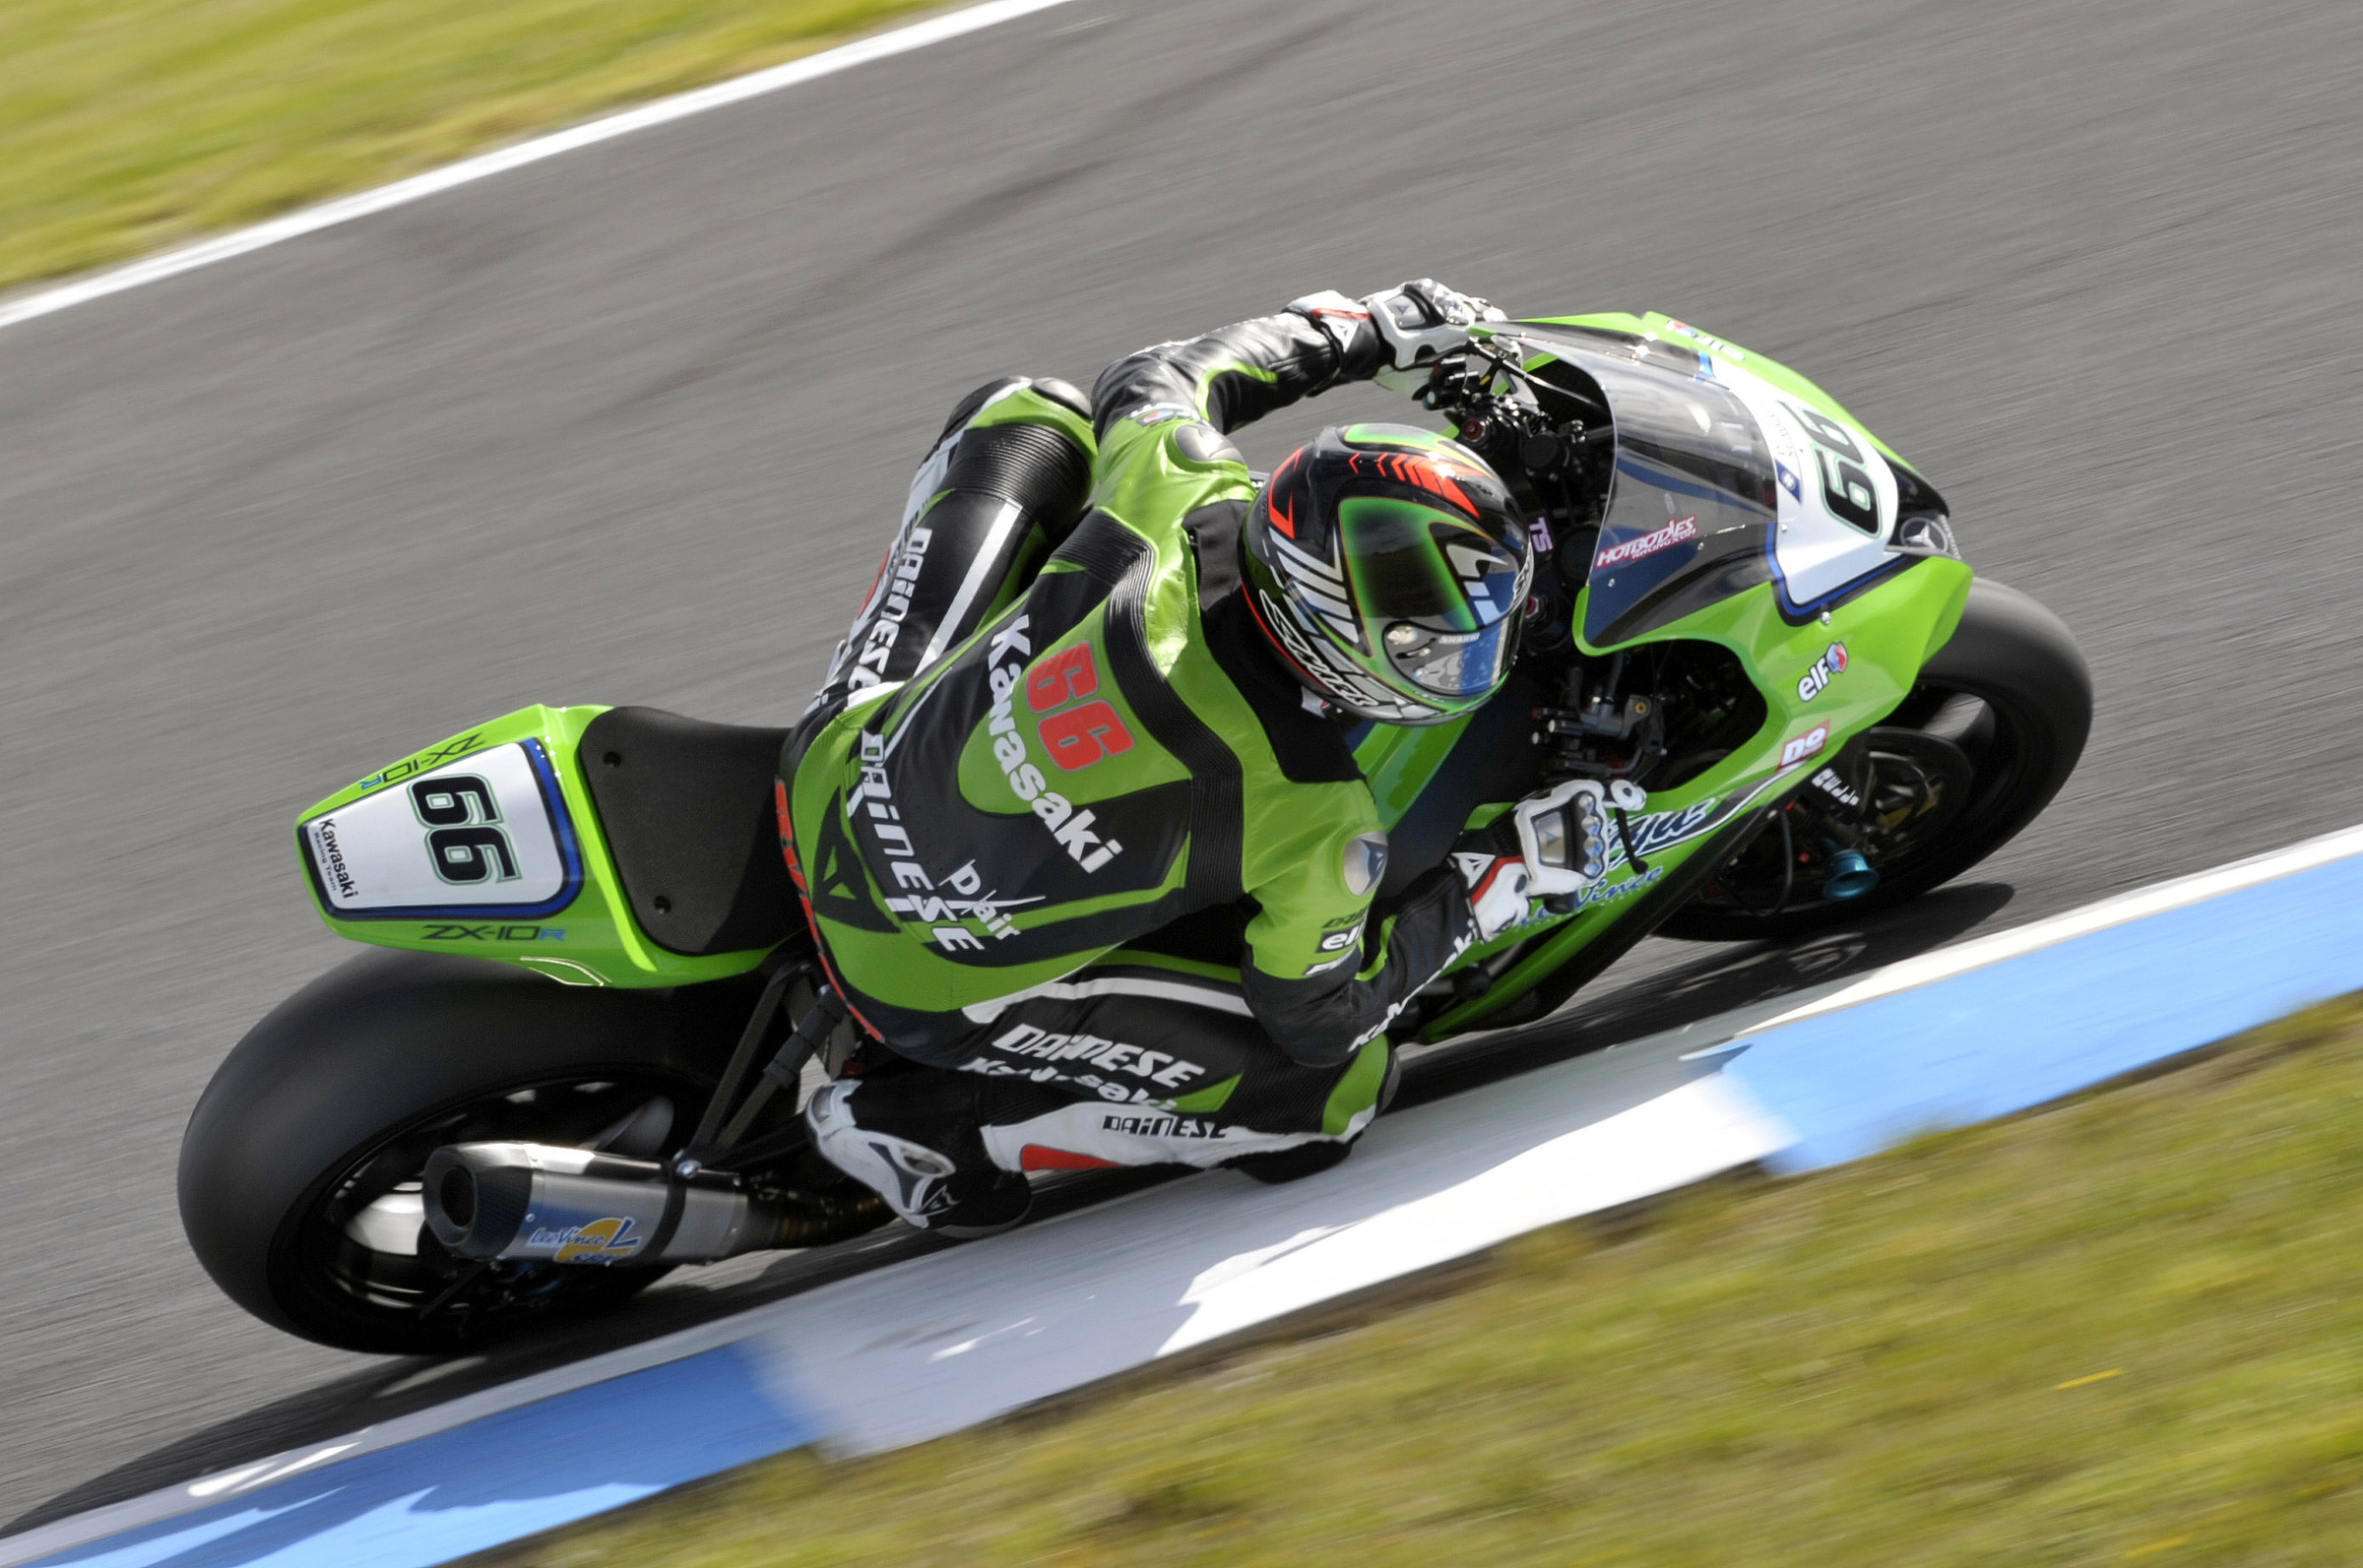 0375_p01_sykes_action.jpg